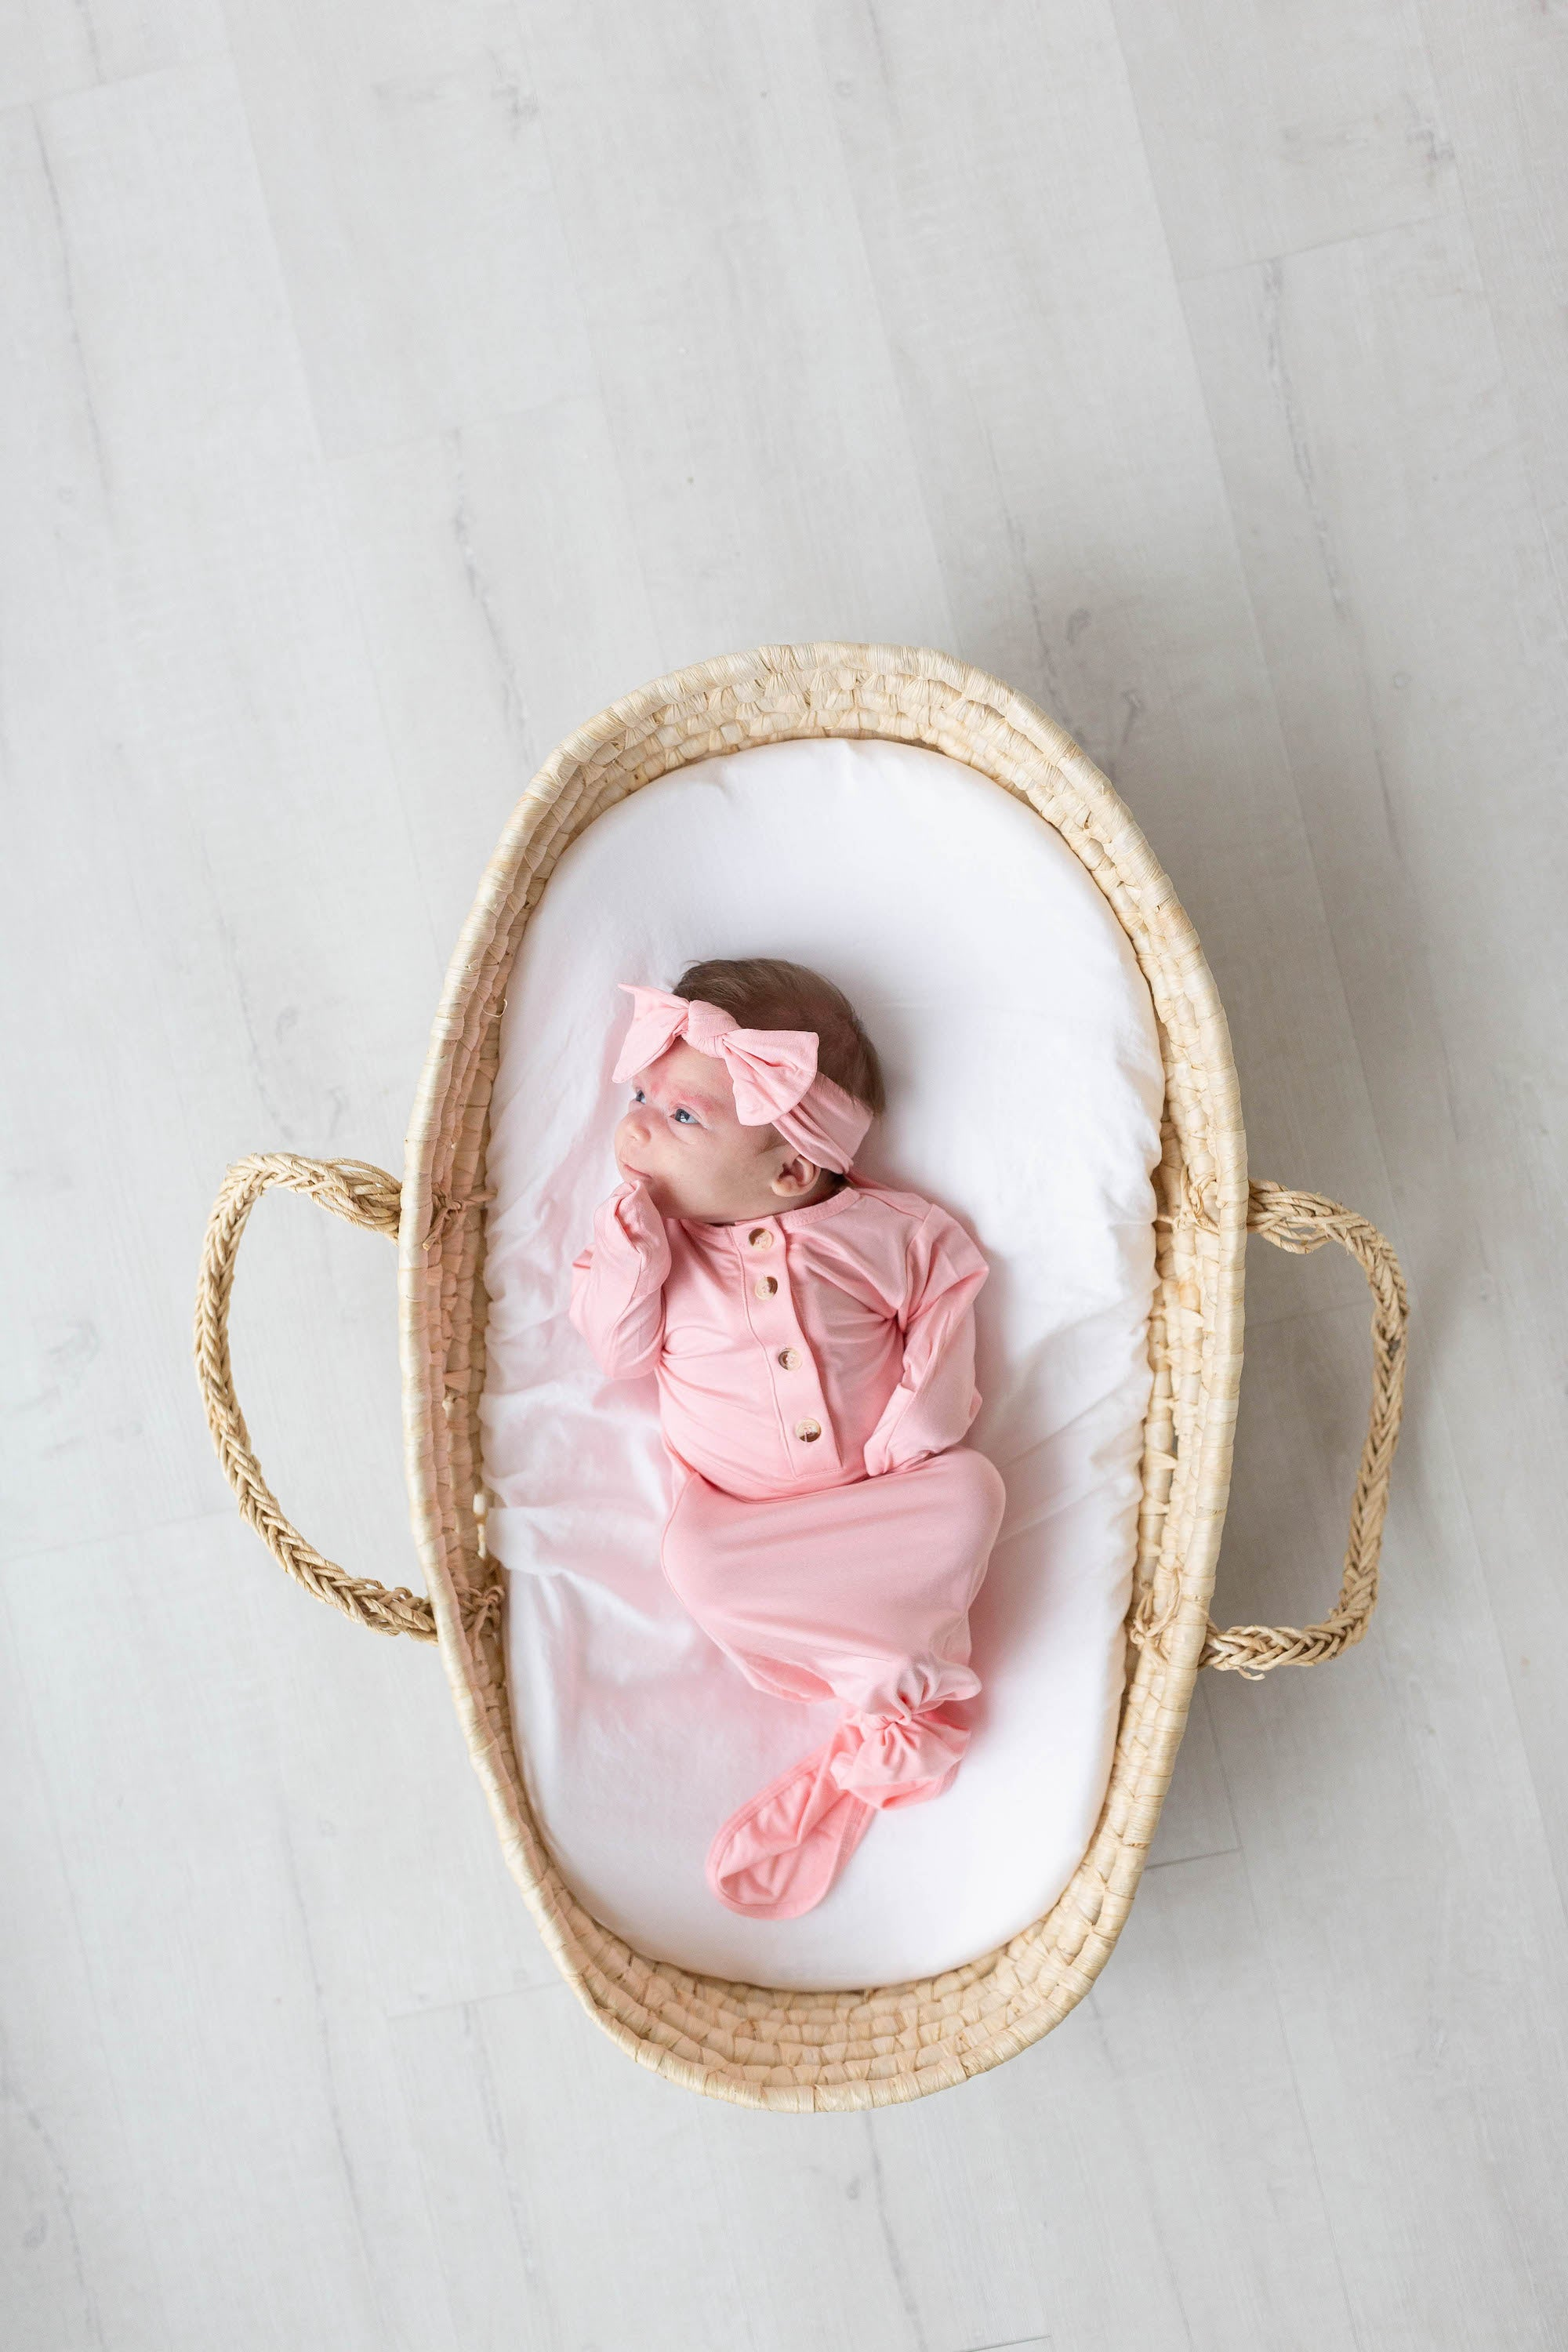 Knotted Baby Gown, Hat & Headband Set - Pink (Newborn-3 months)